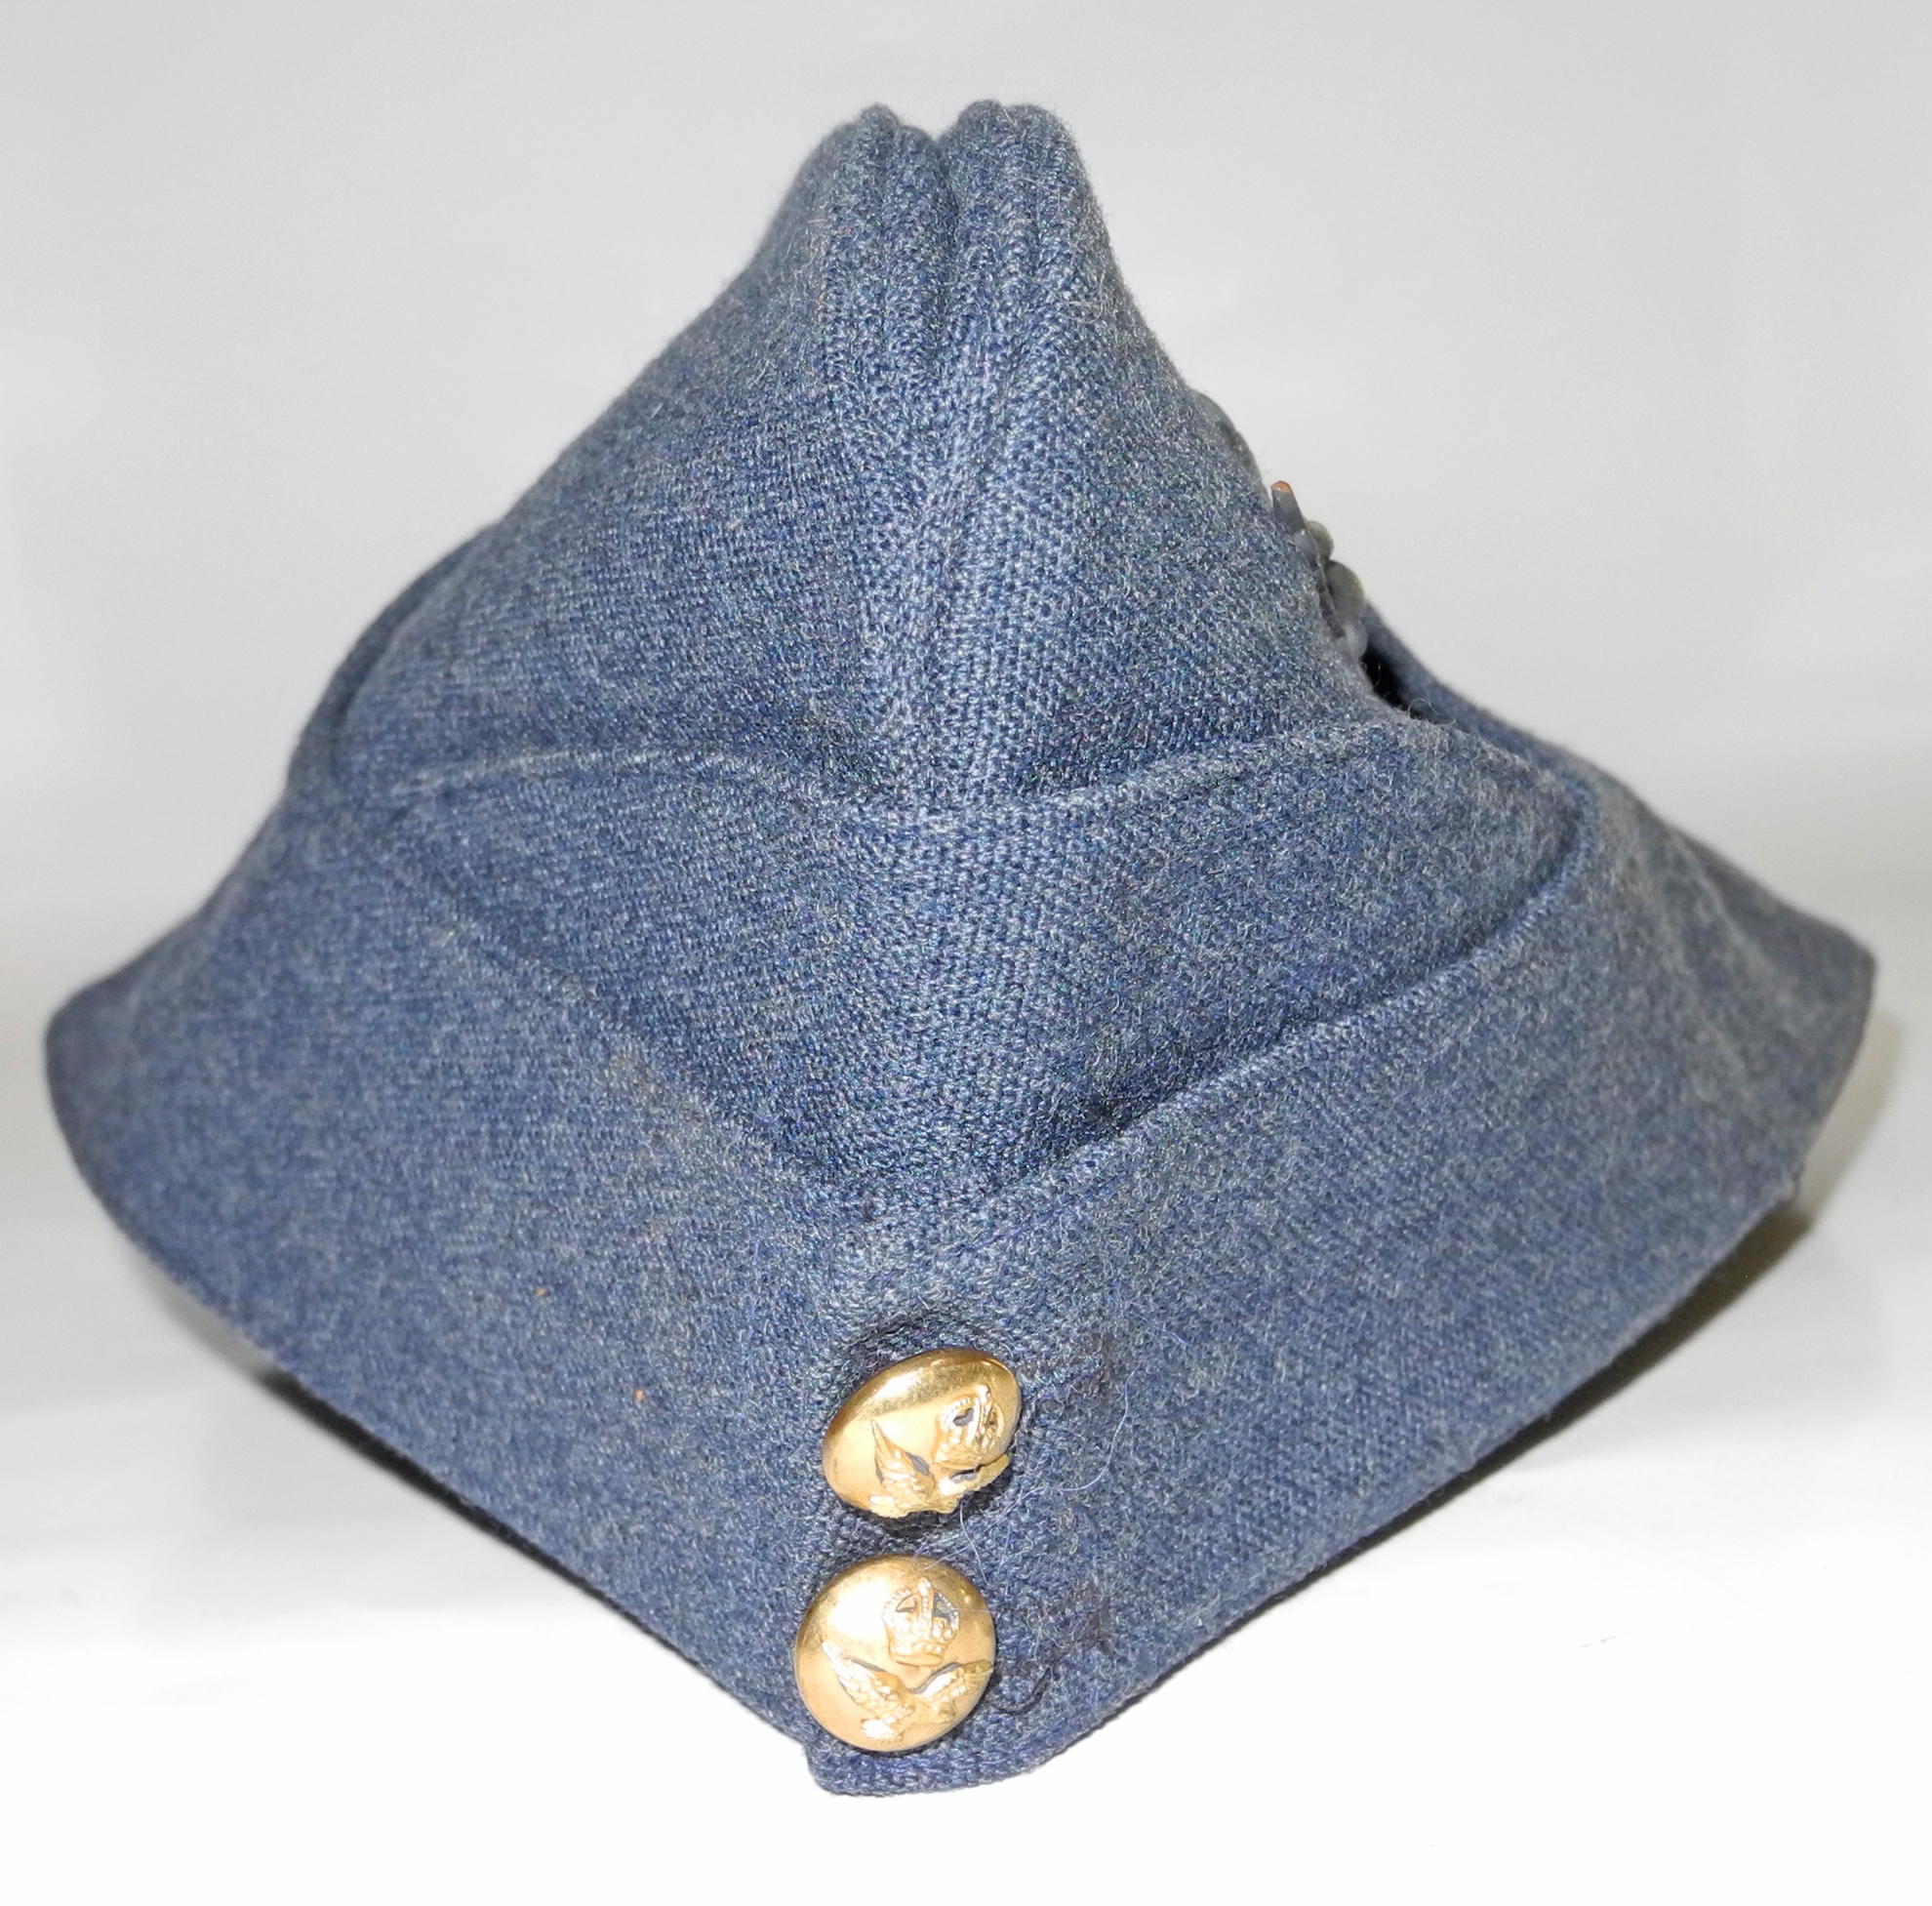 RAF officer's side cap